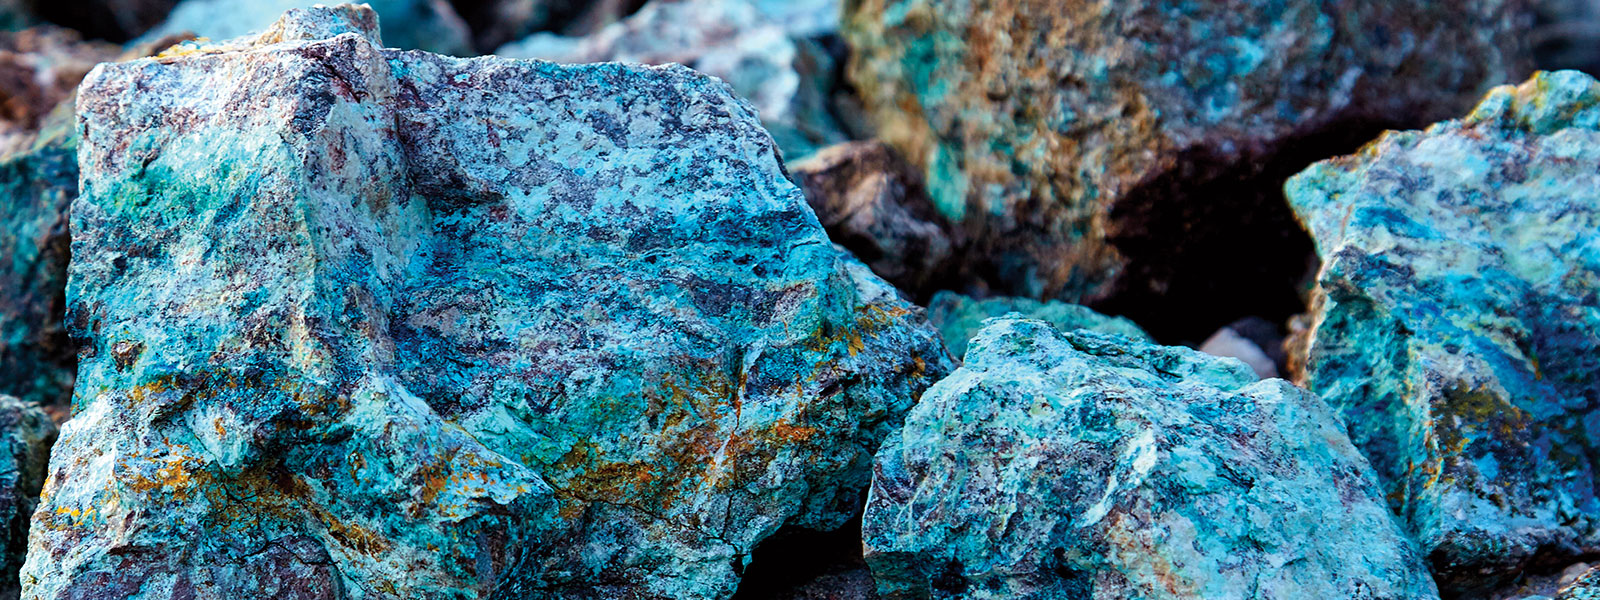 Copper Ore Mining & Metals